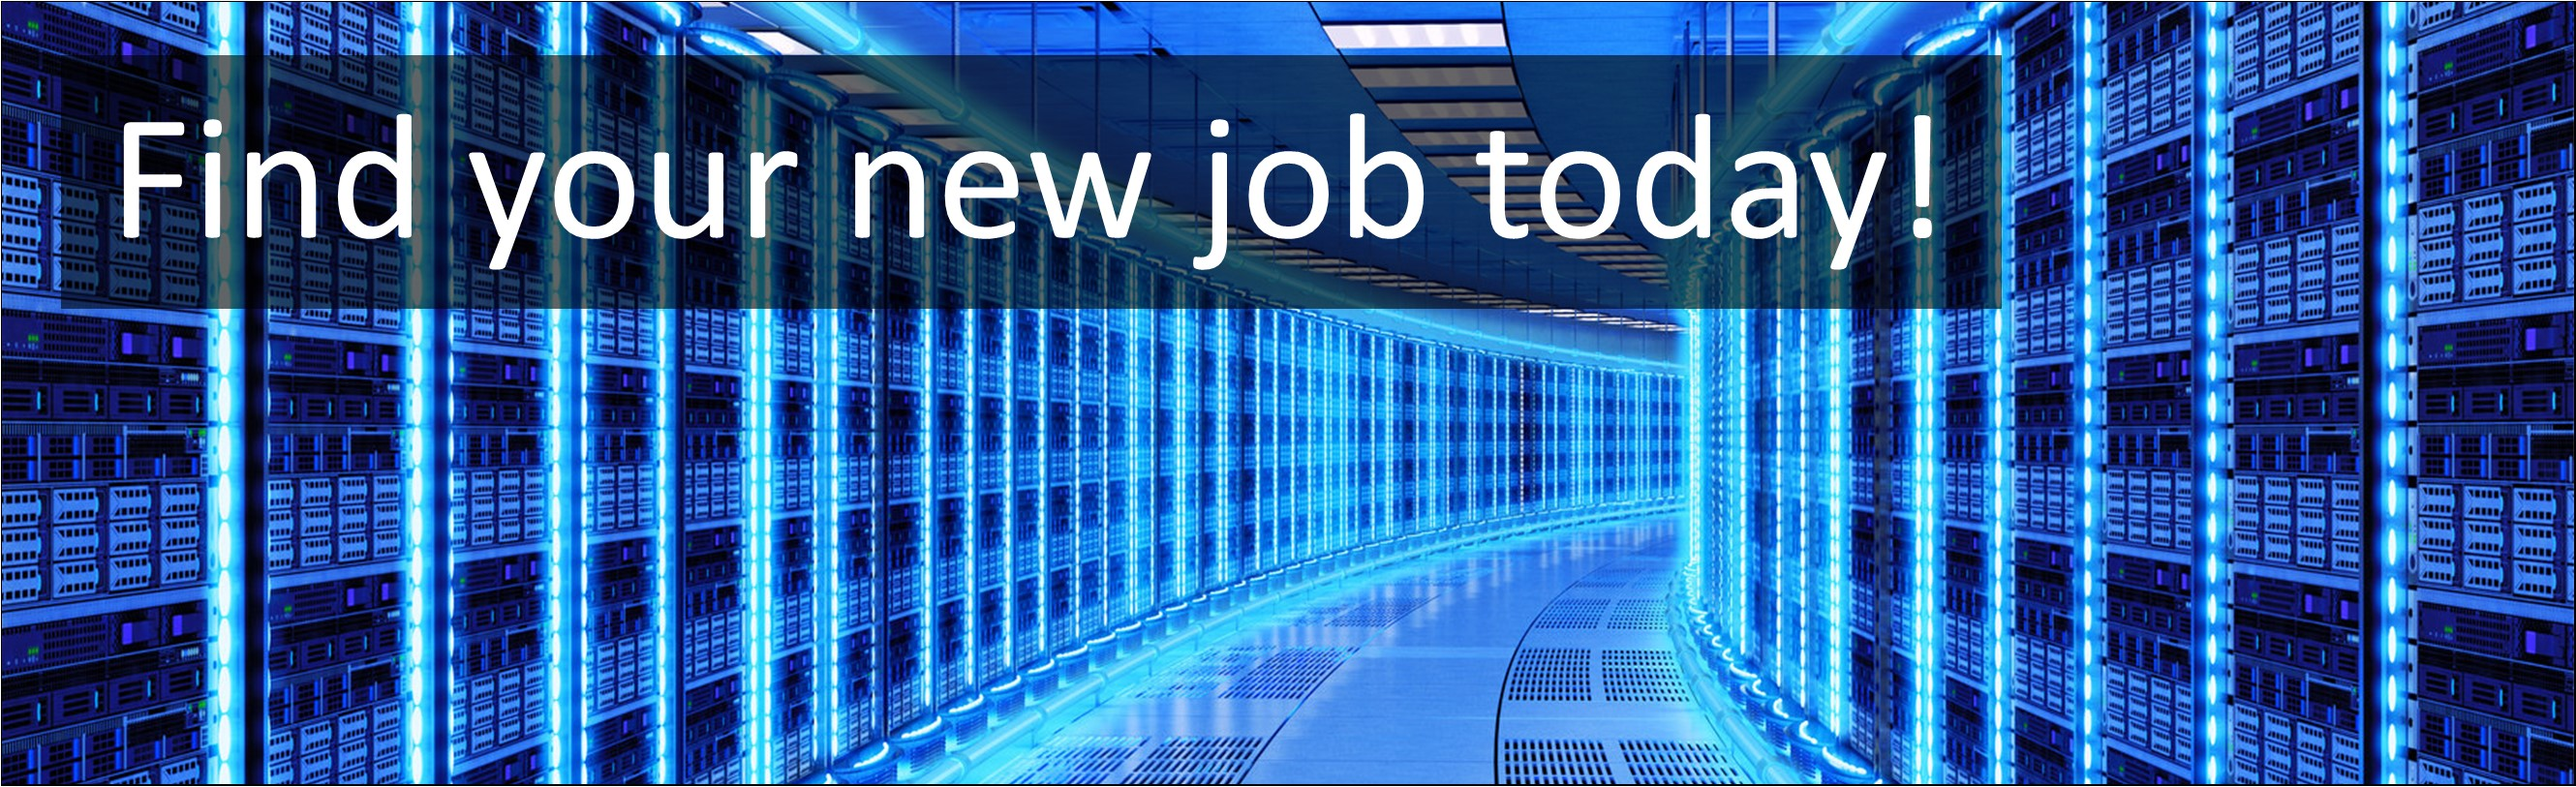 IT & Communication Jobs. Senior ICT Technician / IT Second & Third Line Support Engineer / Desktop / Infrastructure Jobs, Careers & Vacancies in Girton, Cambridge, Cambridgeshire Advertised by AWD online – Multi-Job Board Advertising and CV Sourcing Recruitment Services